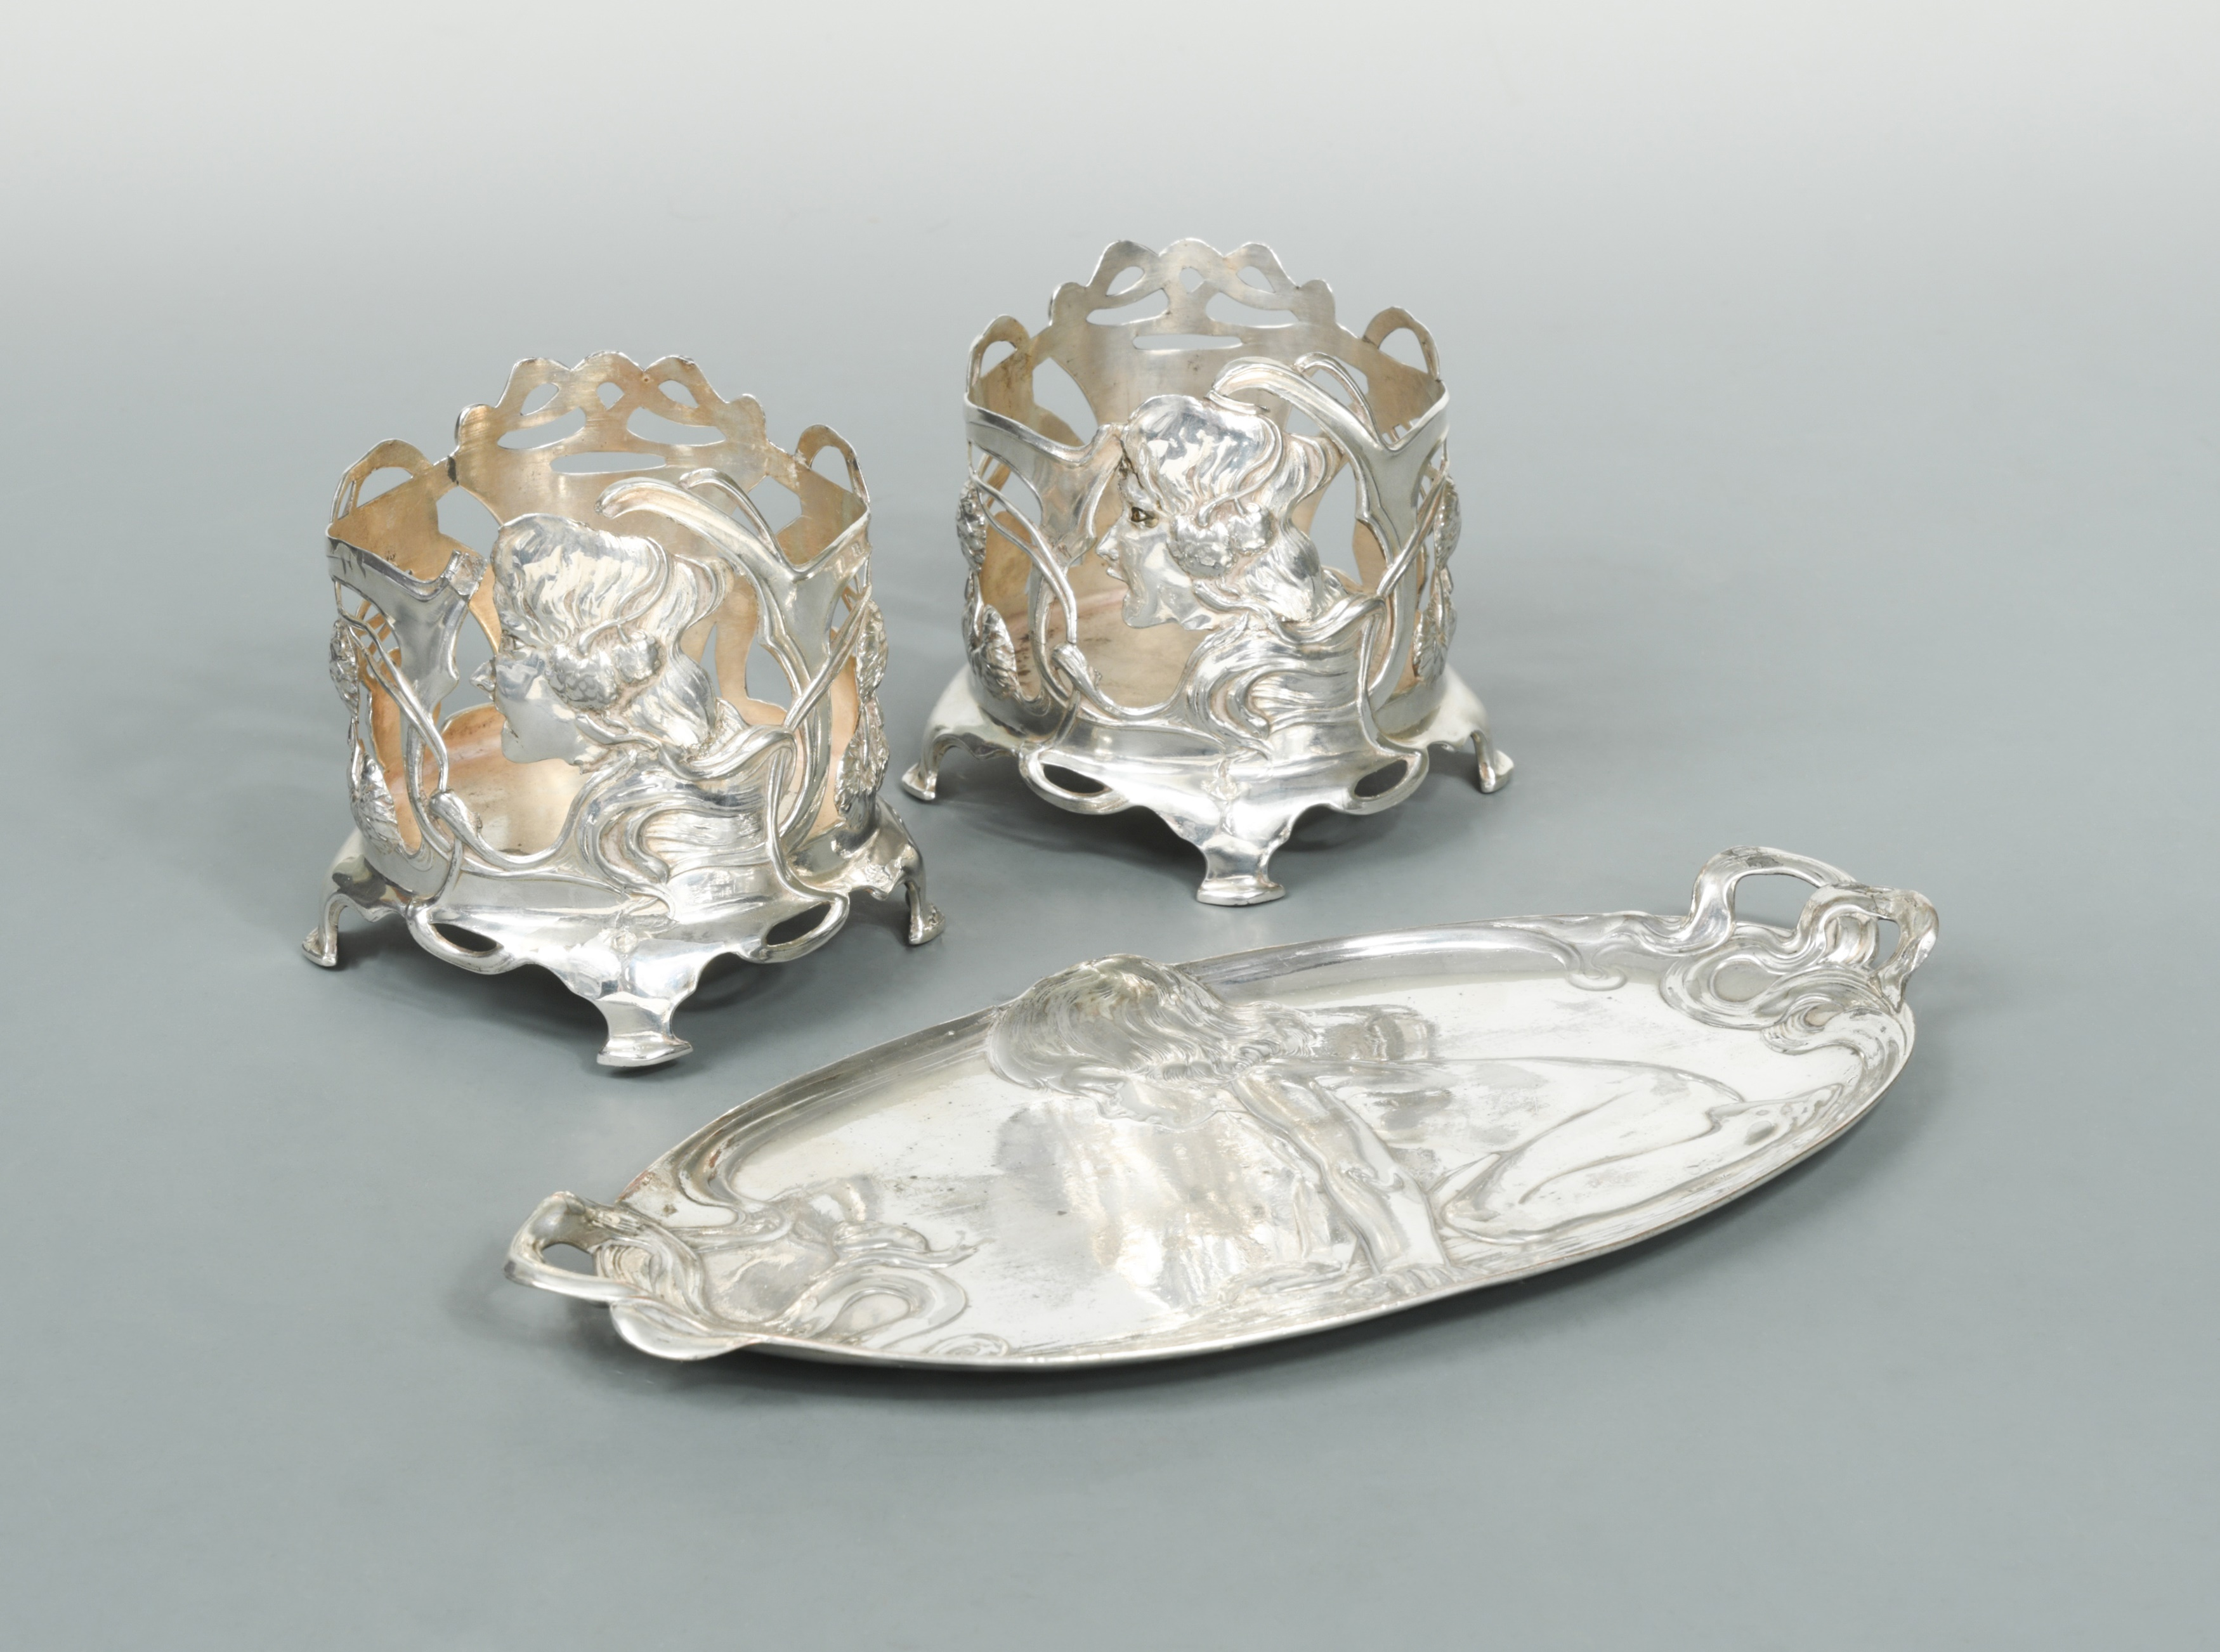 A German metalwares dressing table tray and a pair of bottle coasters all in the Art Nouveau style,